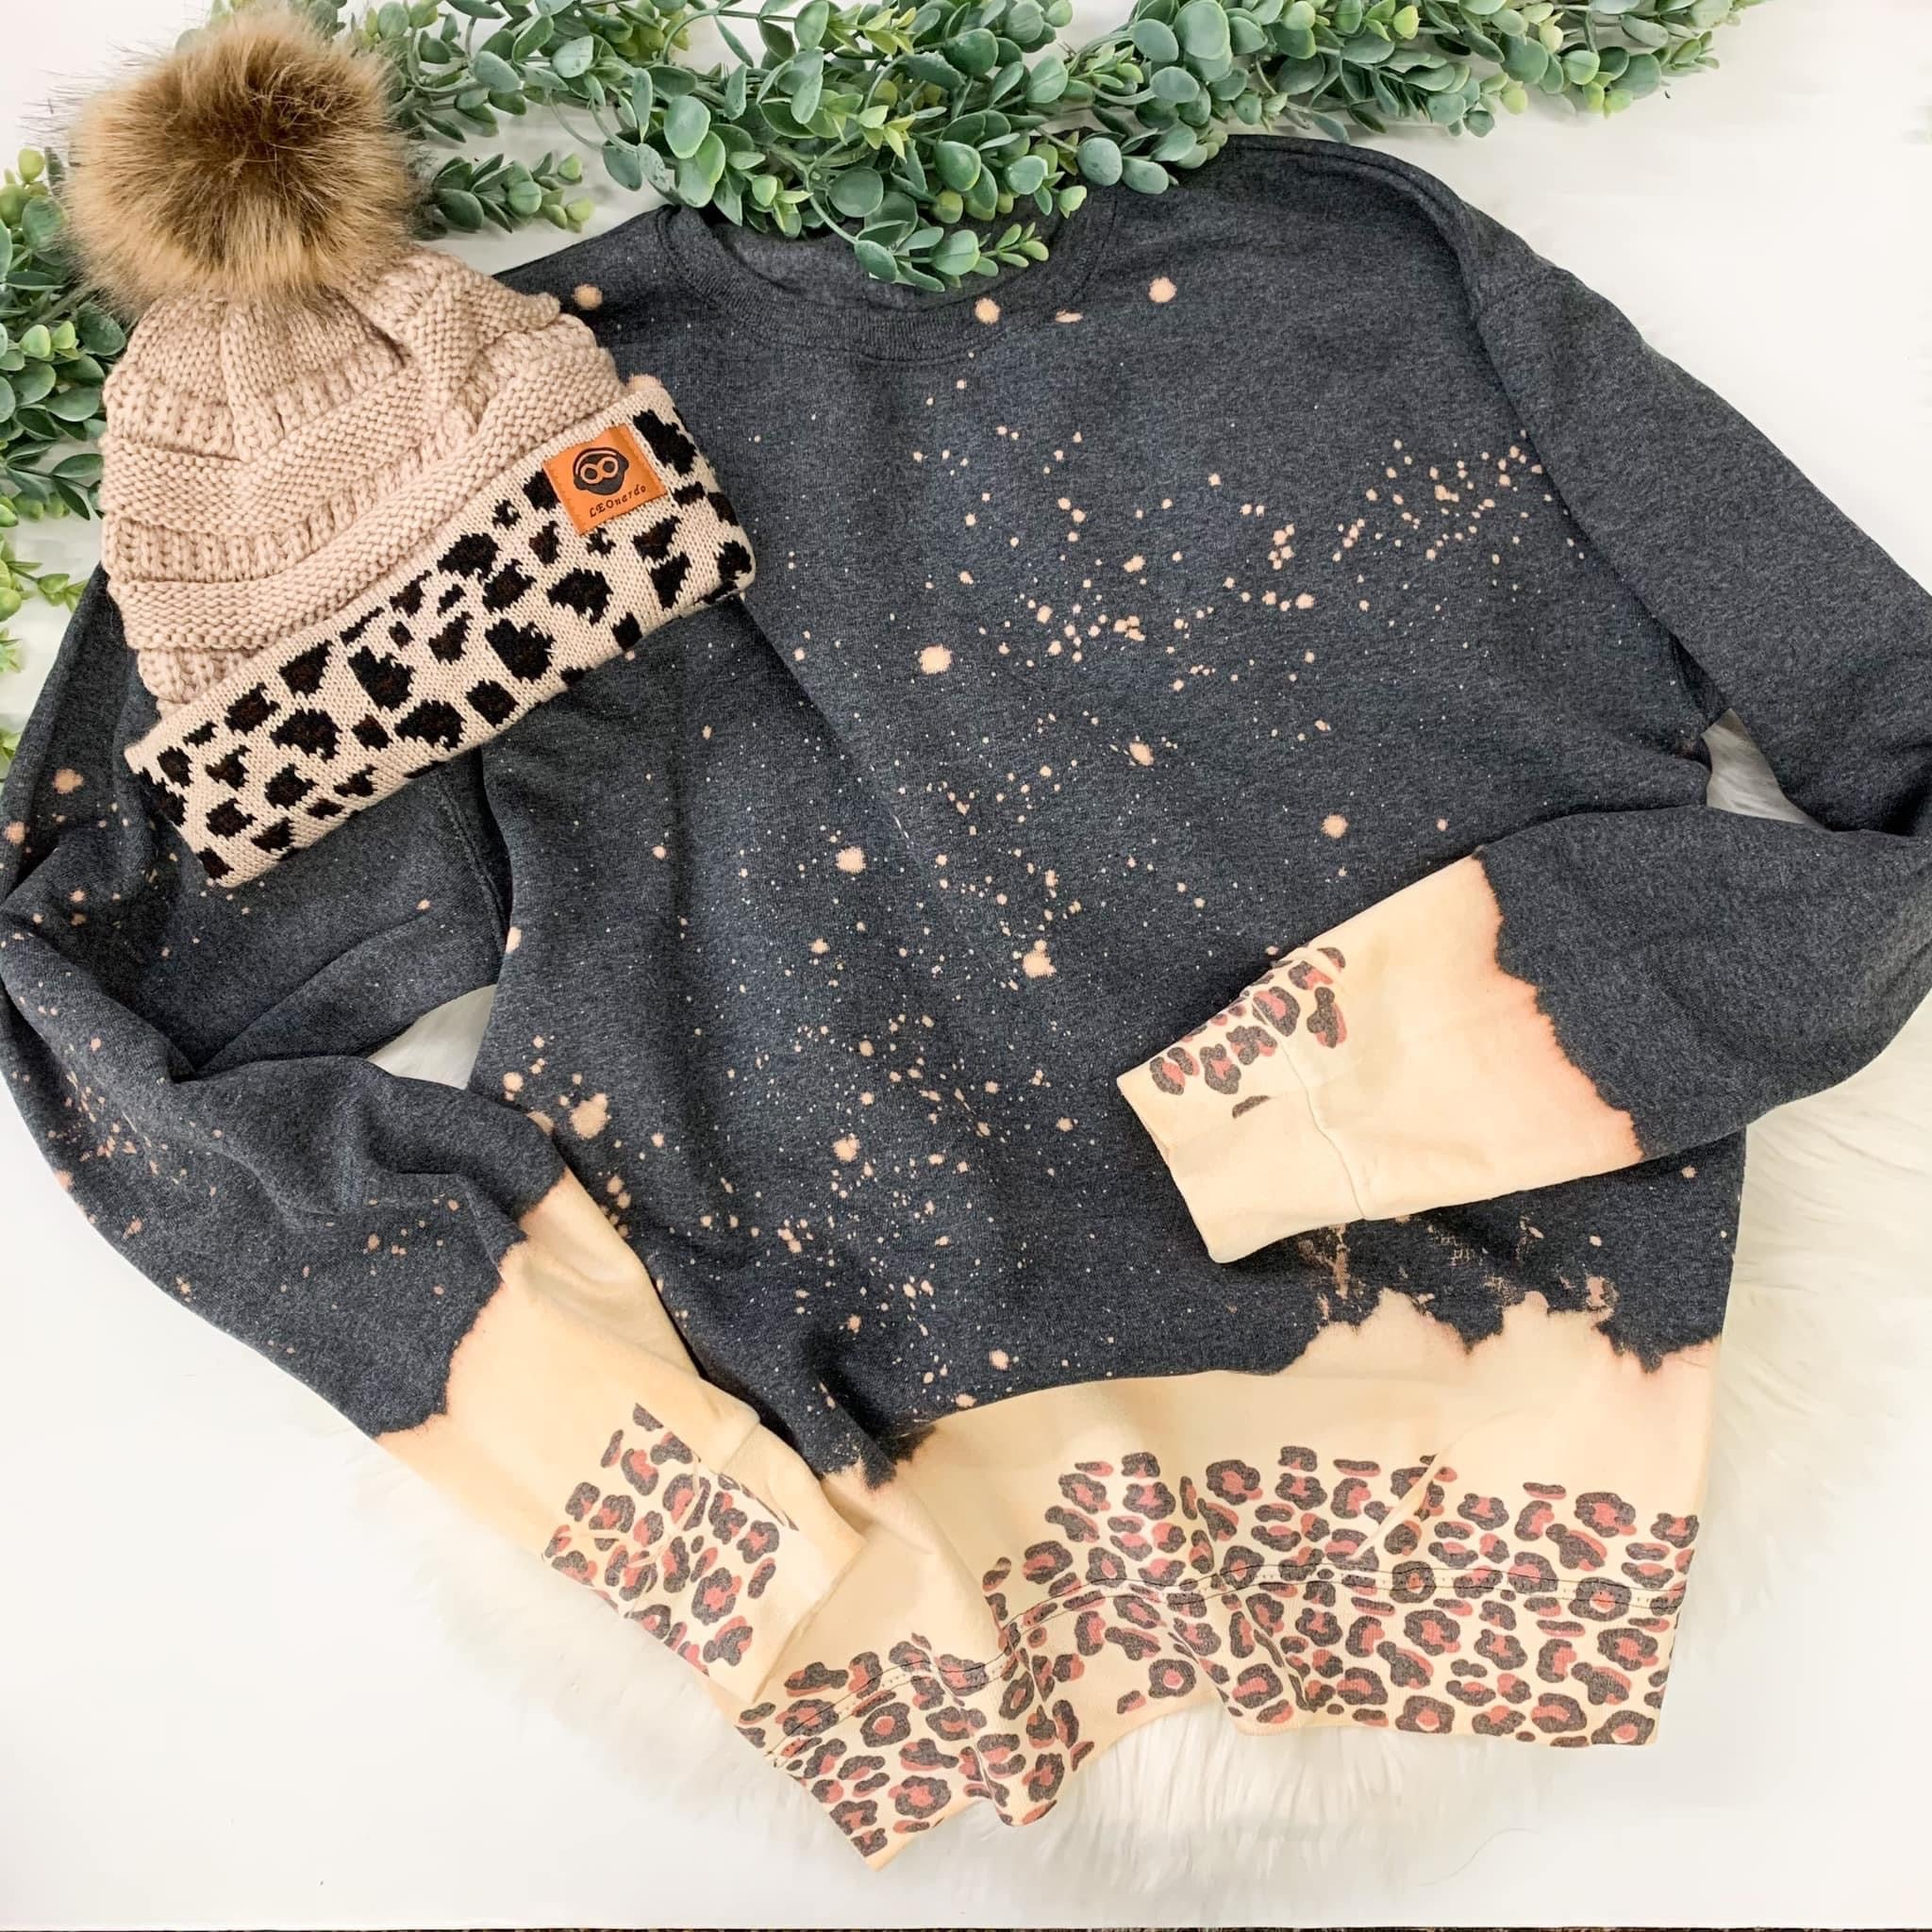 Bleached Leopard Sweater (PRE-ORDER) - This & That Boutique Shop